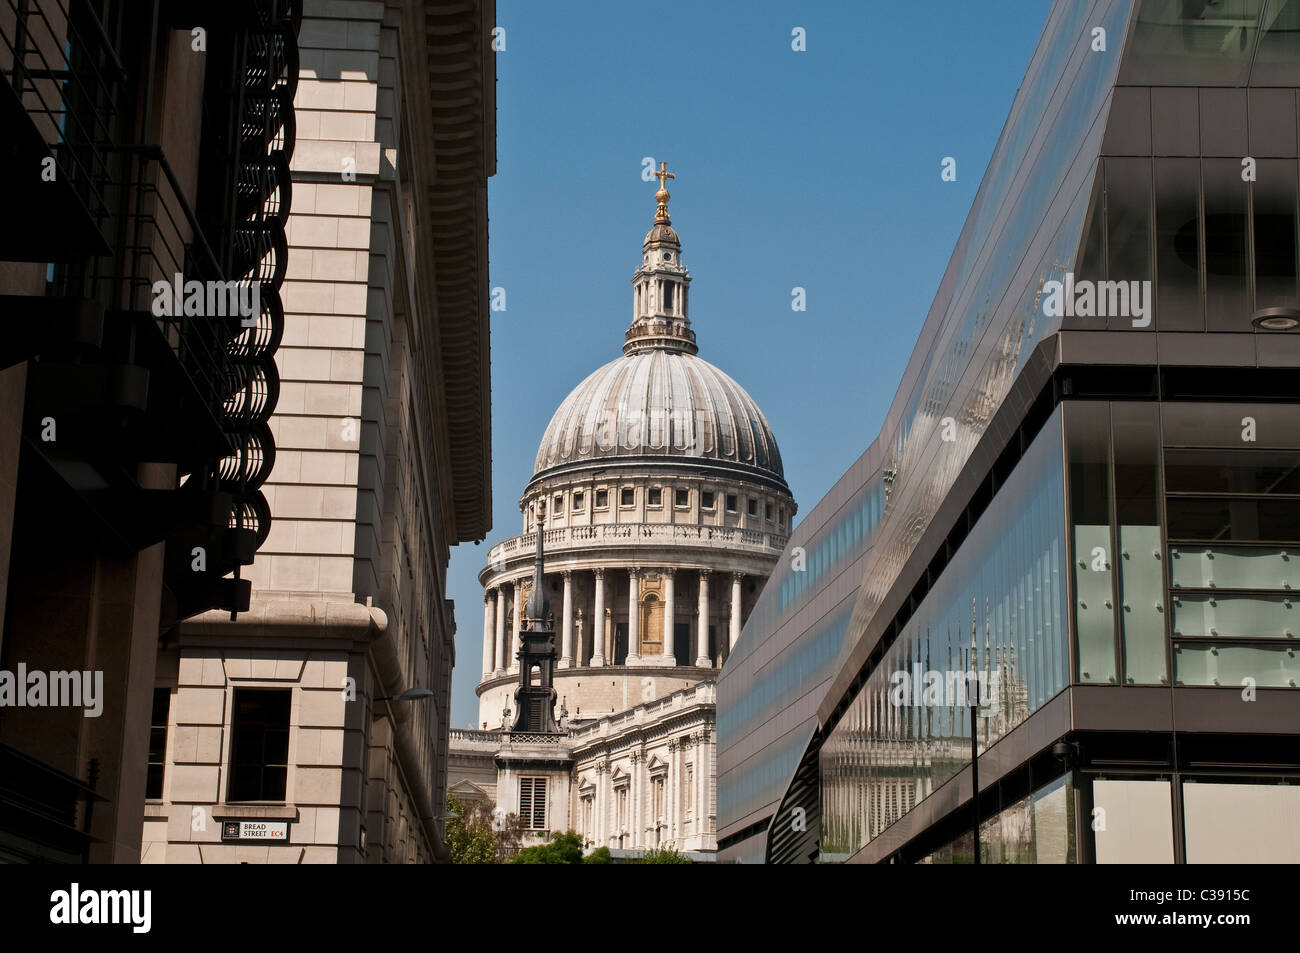 St Paul's Cathedral and One New Change building, from Watling Street, City of London, UK - Stock Image